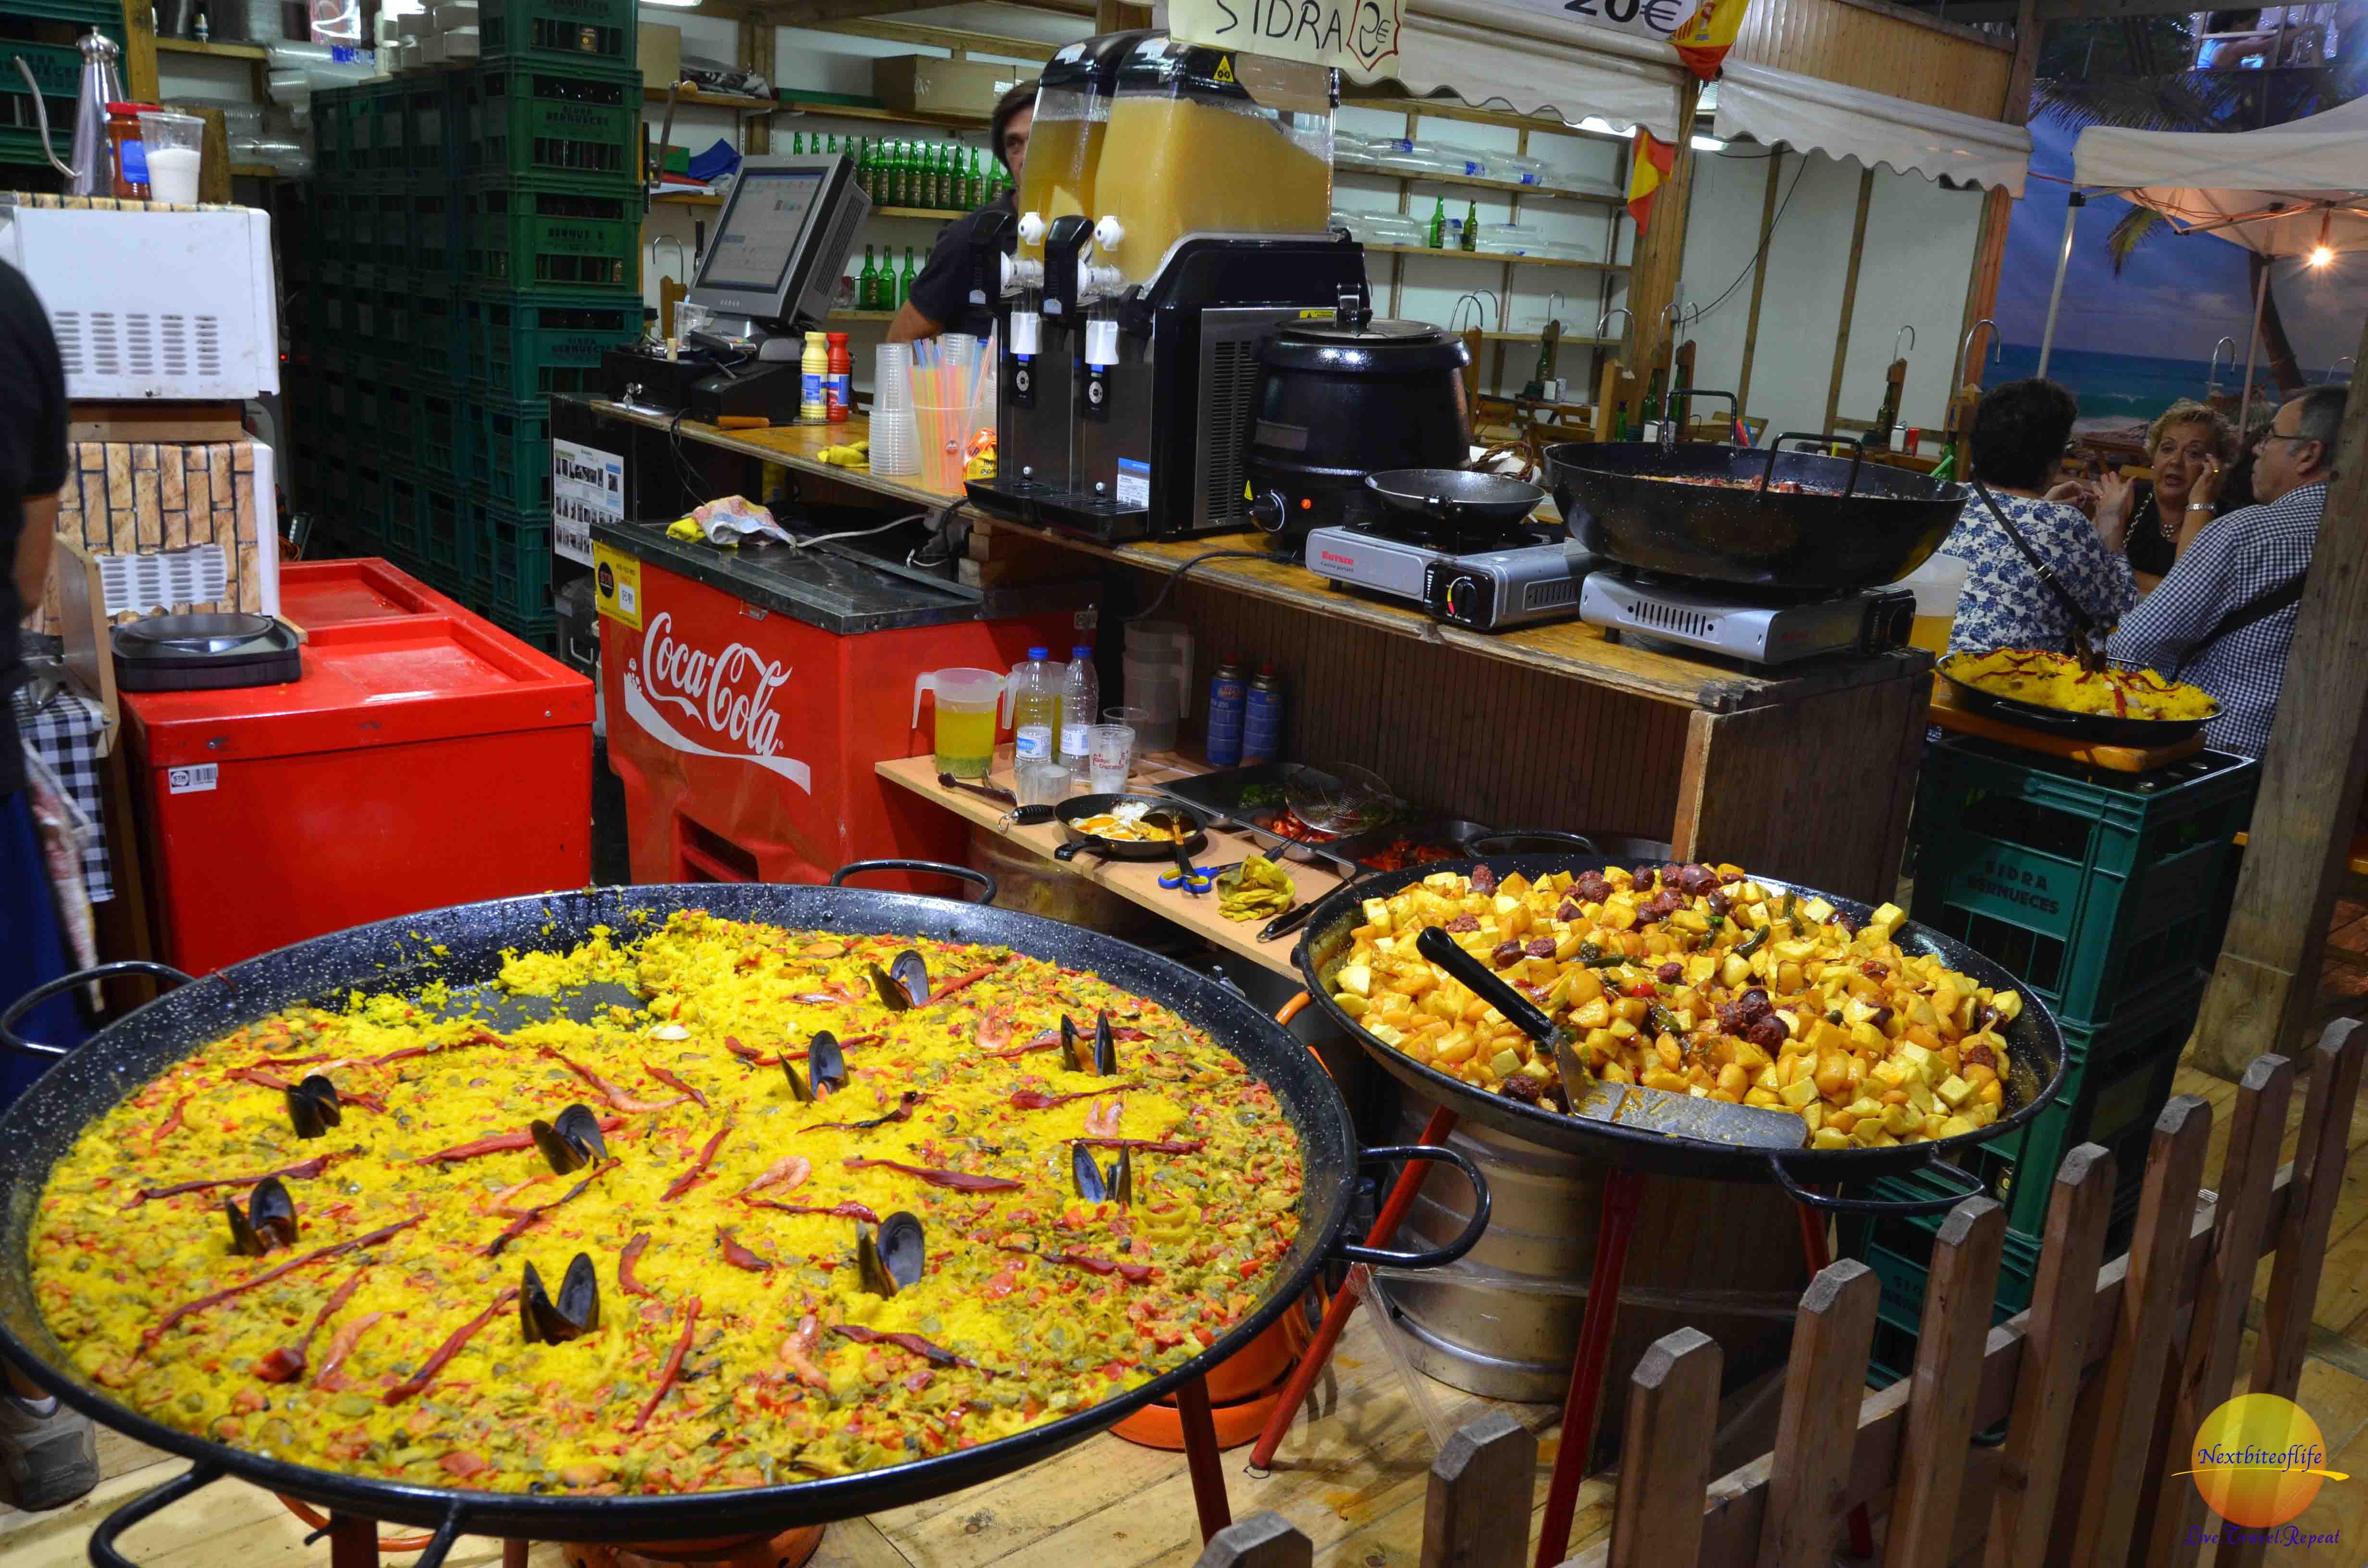 Those potatoes looked awesome! The paella doesn't look half bad either!